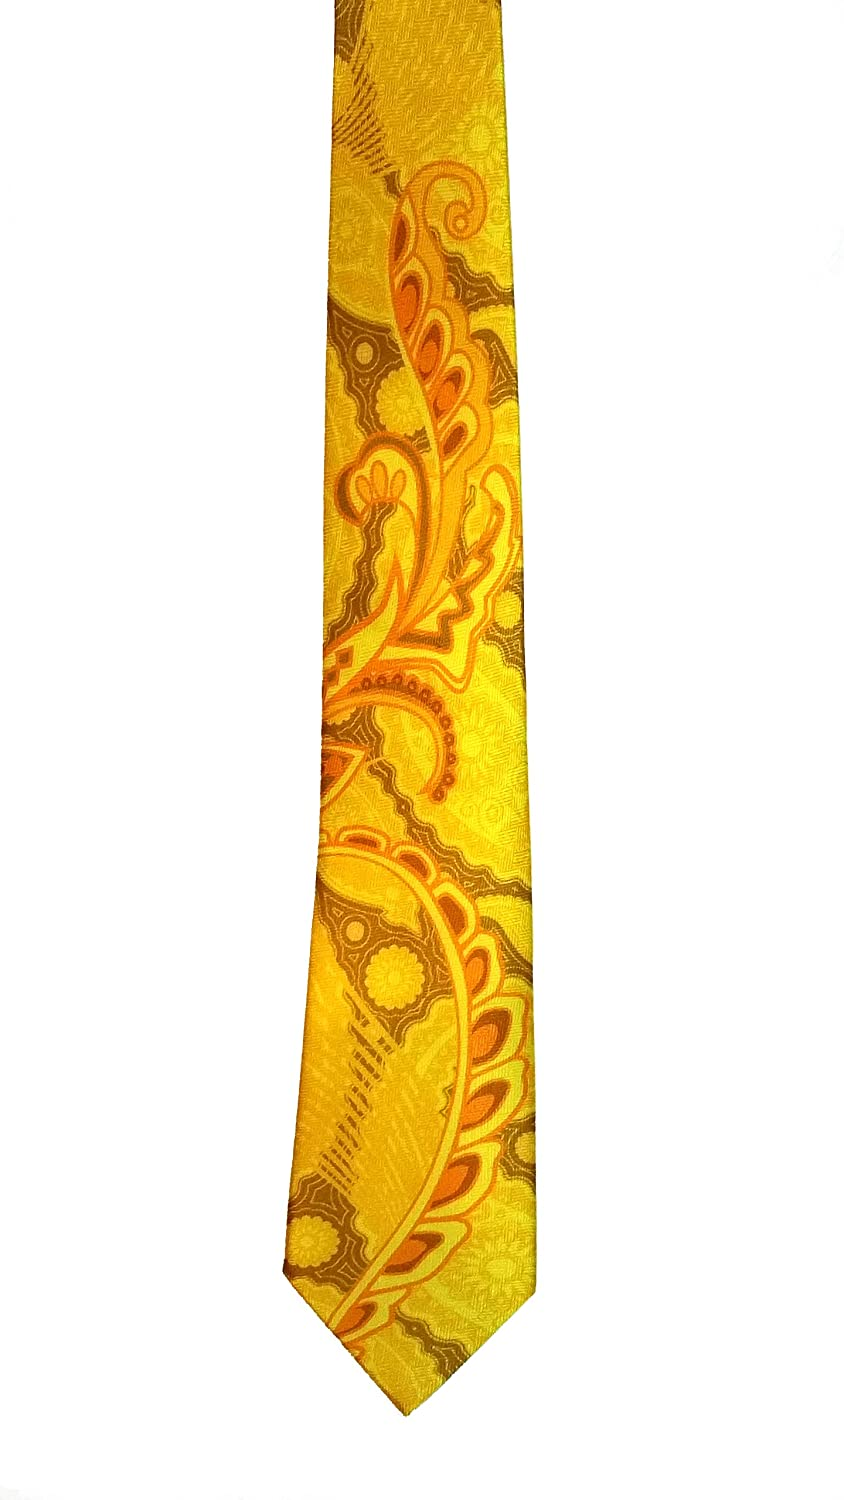 gold Pangborn Profusion Silk Tie in yellow